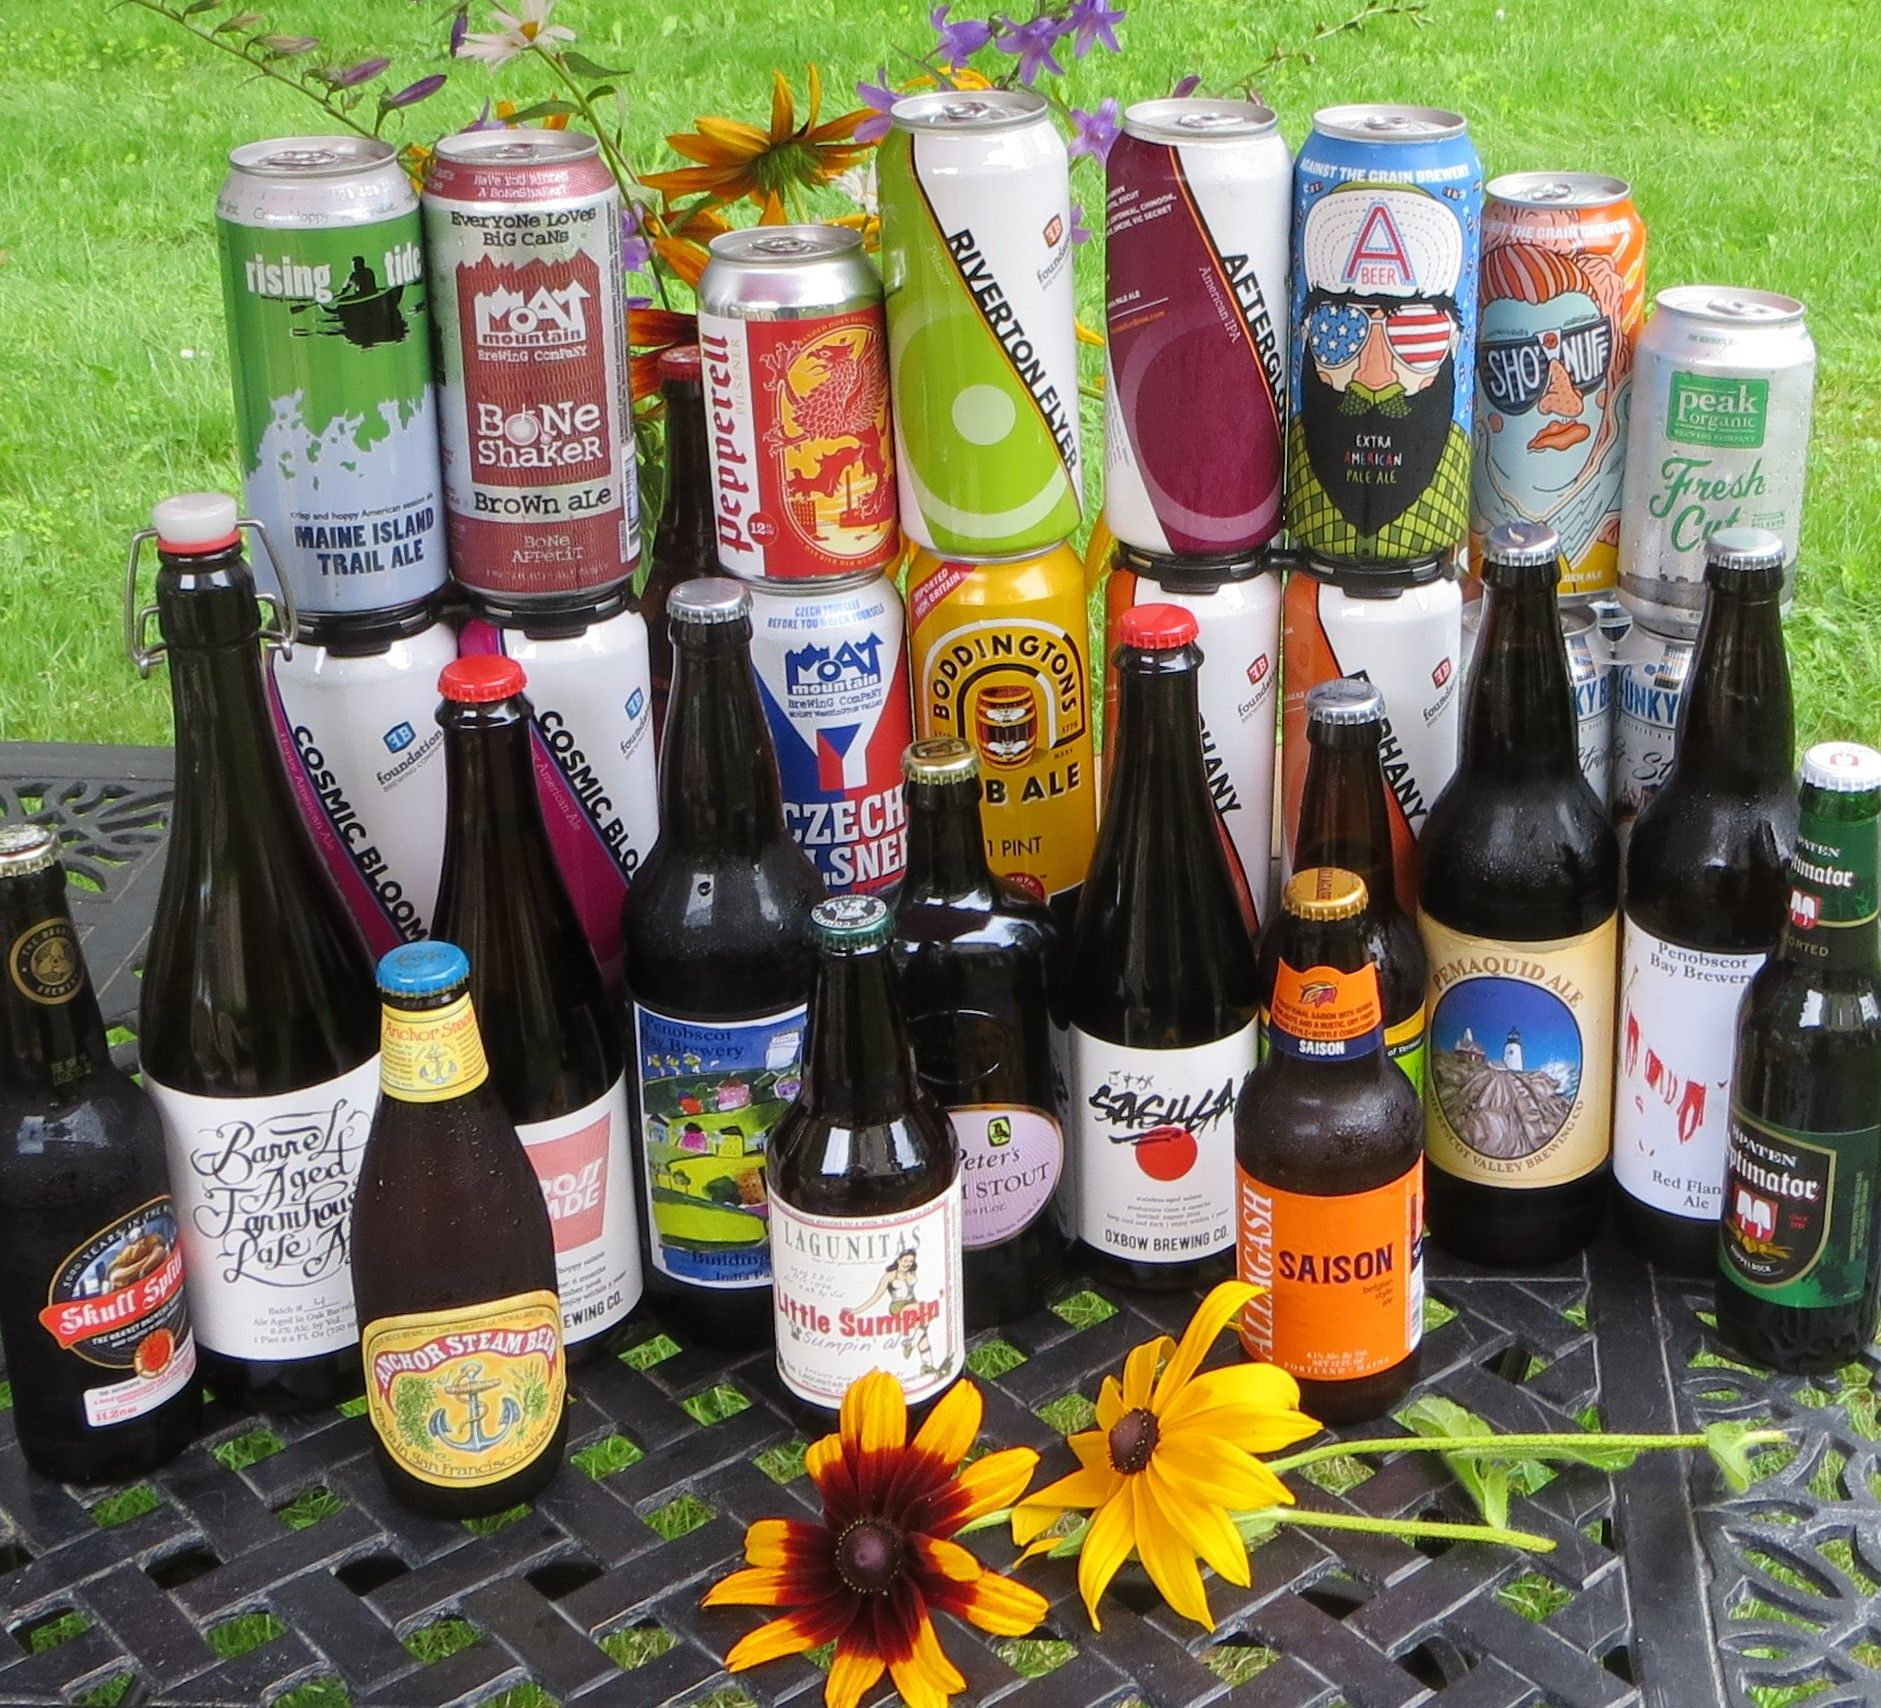 Find craft beer and local maine brews at the black sheep